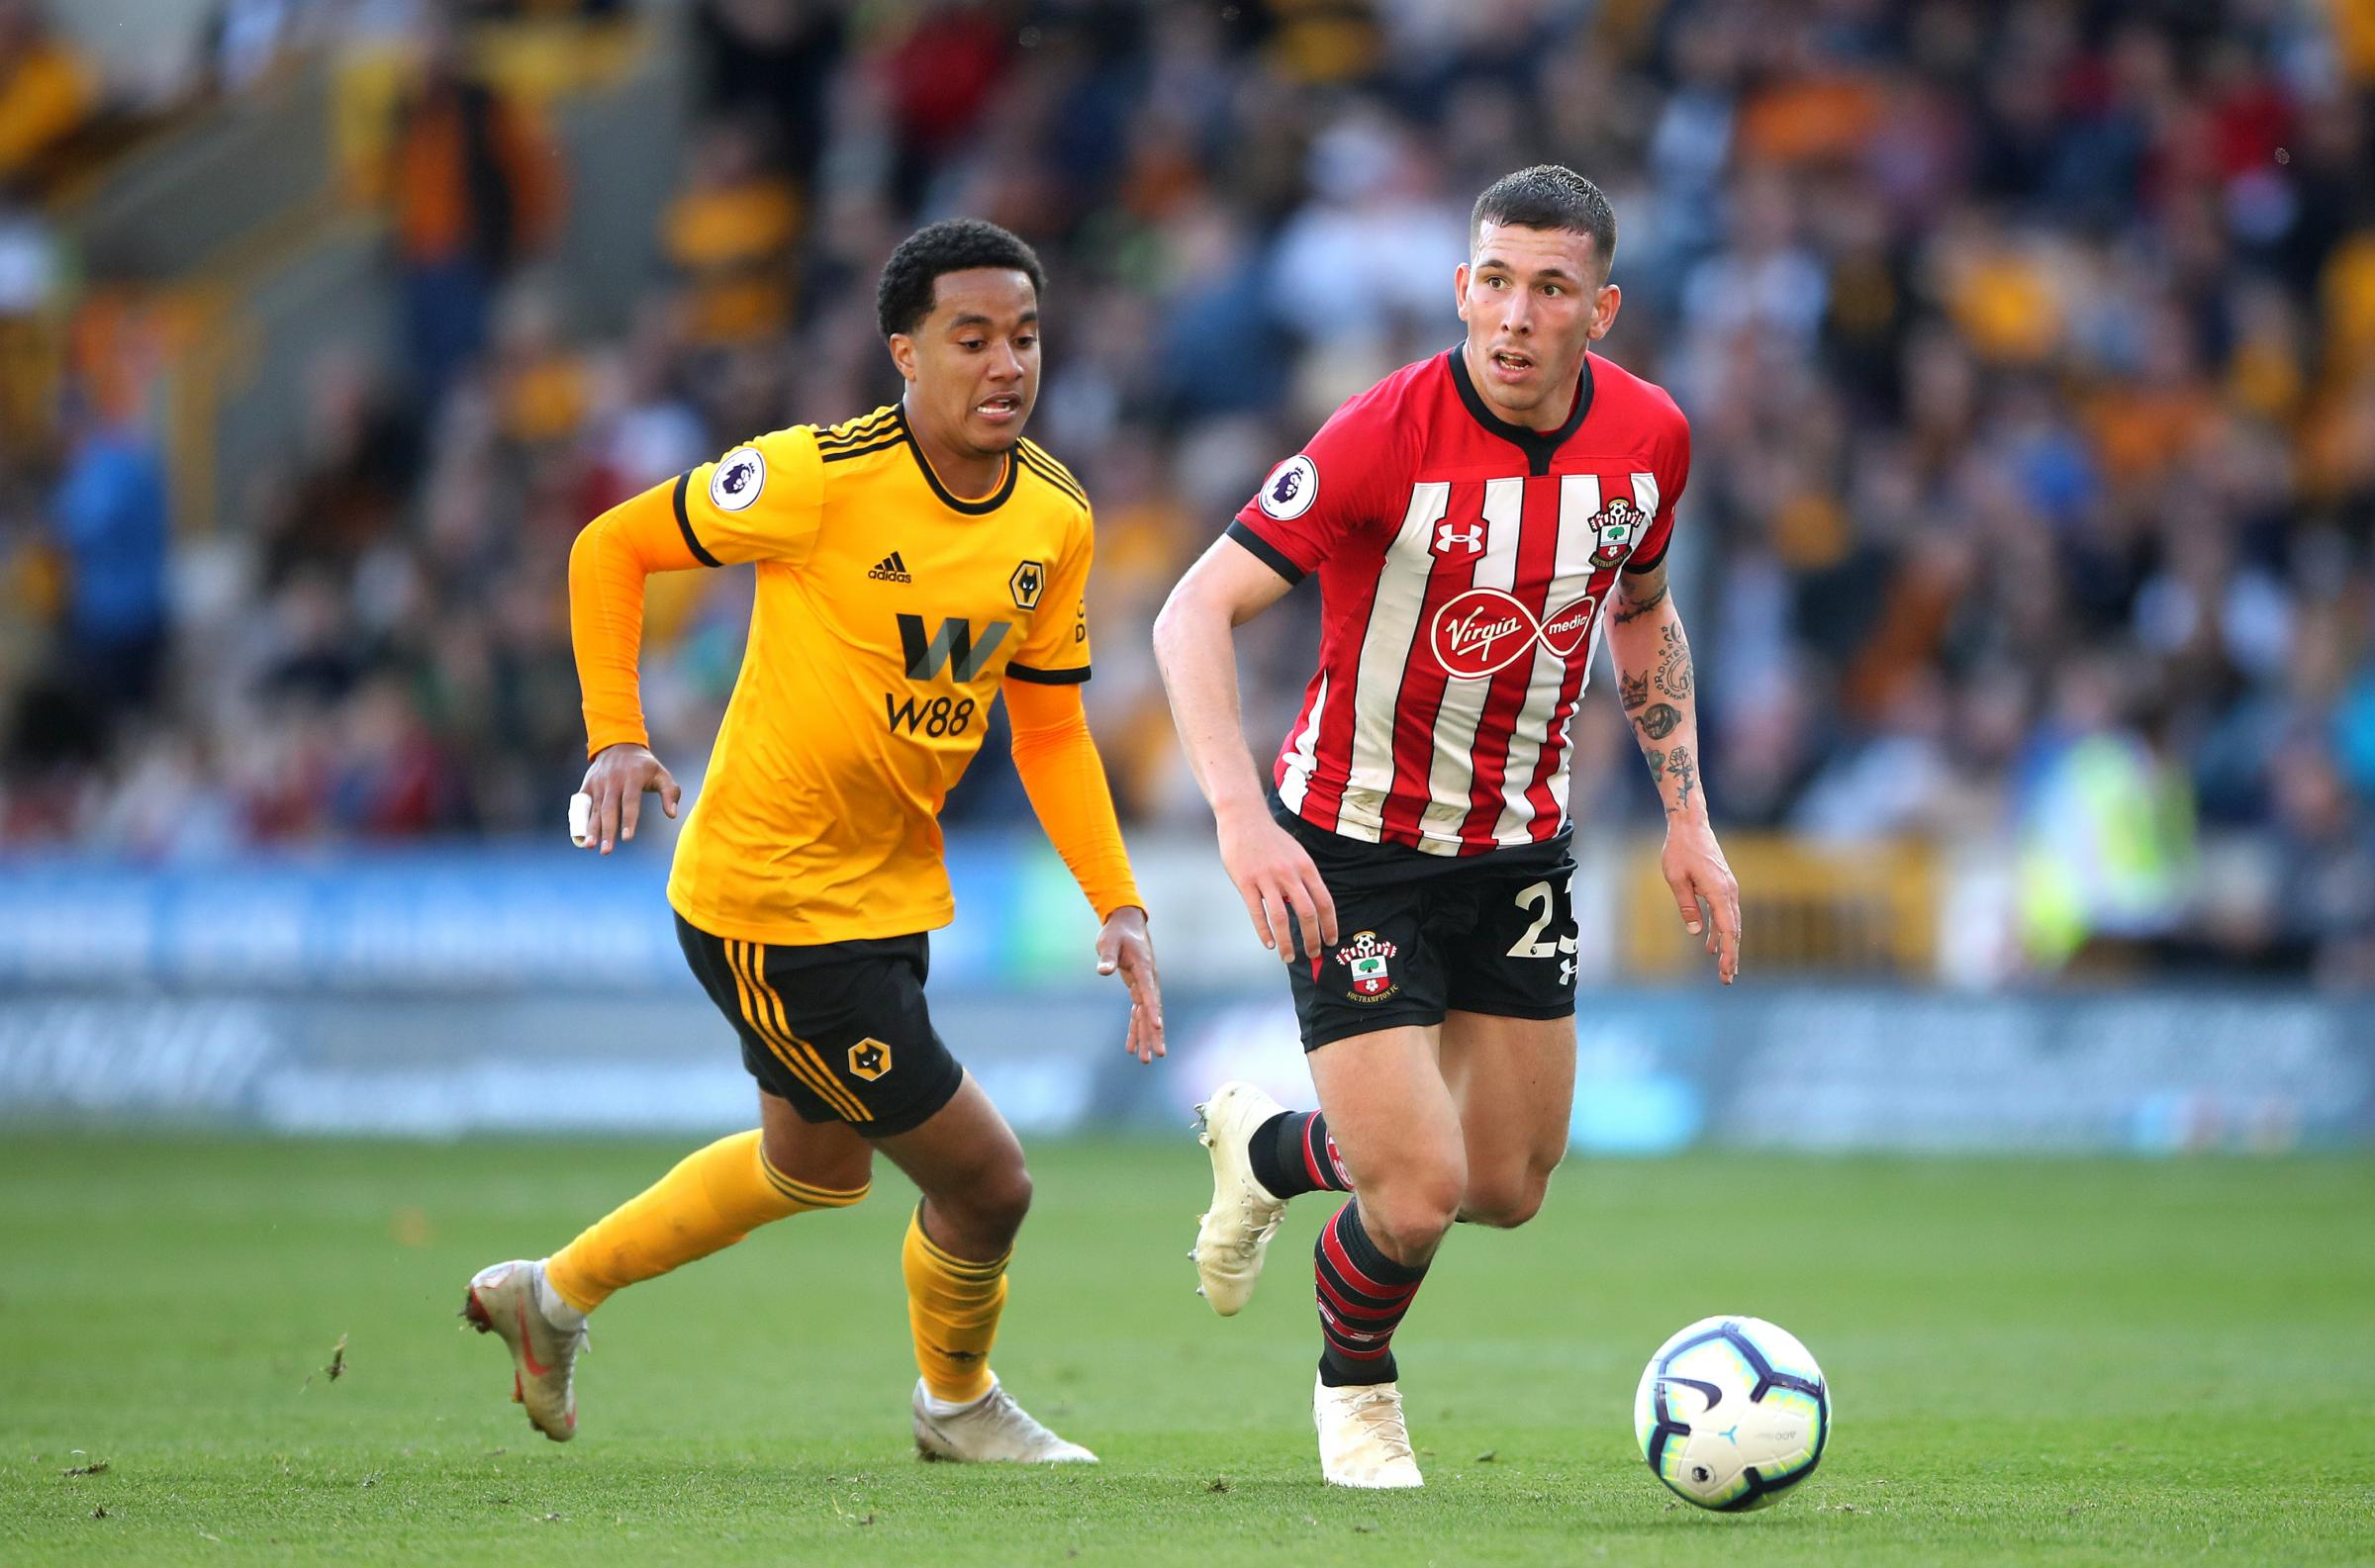 Pierre-Emile Hojbjerg carries the ball forward against Wolves